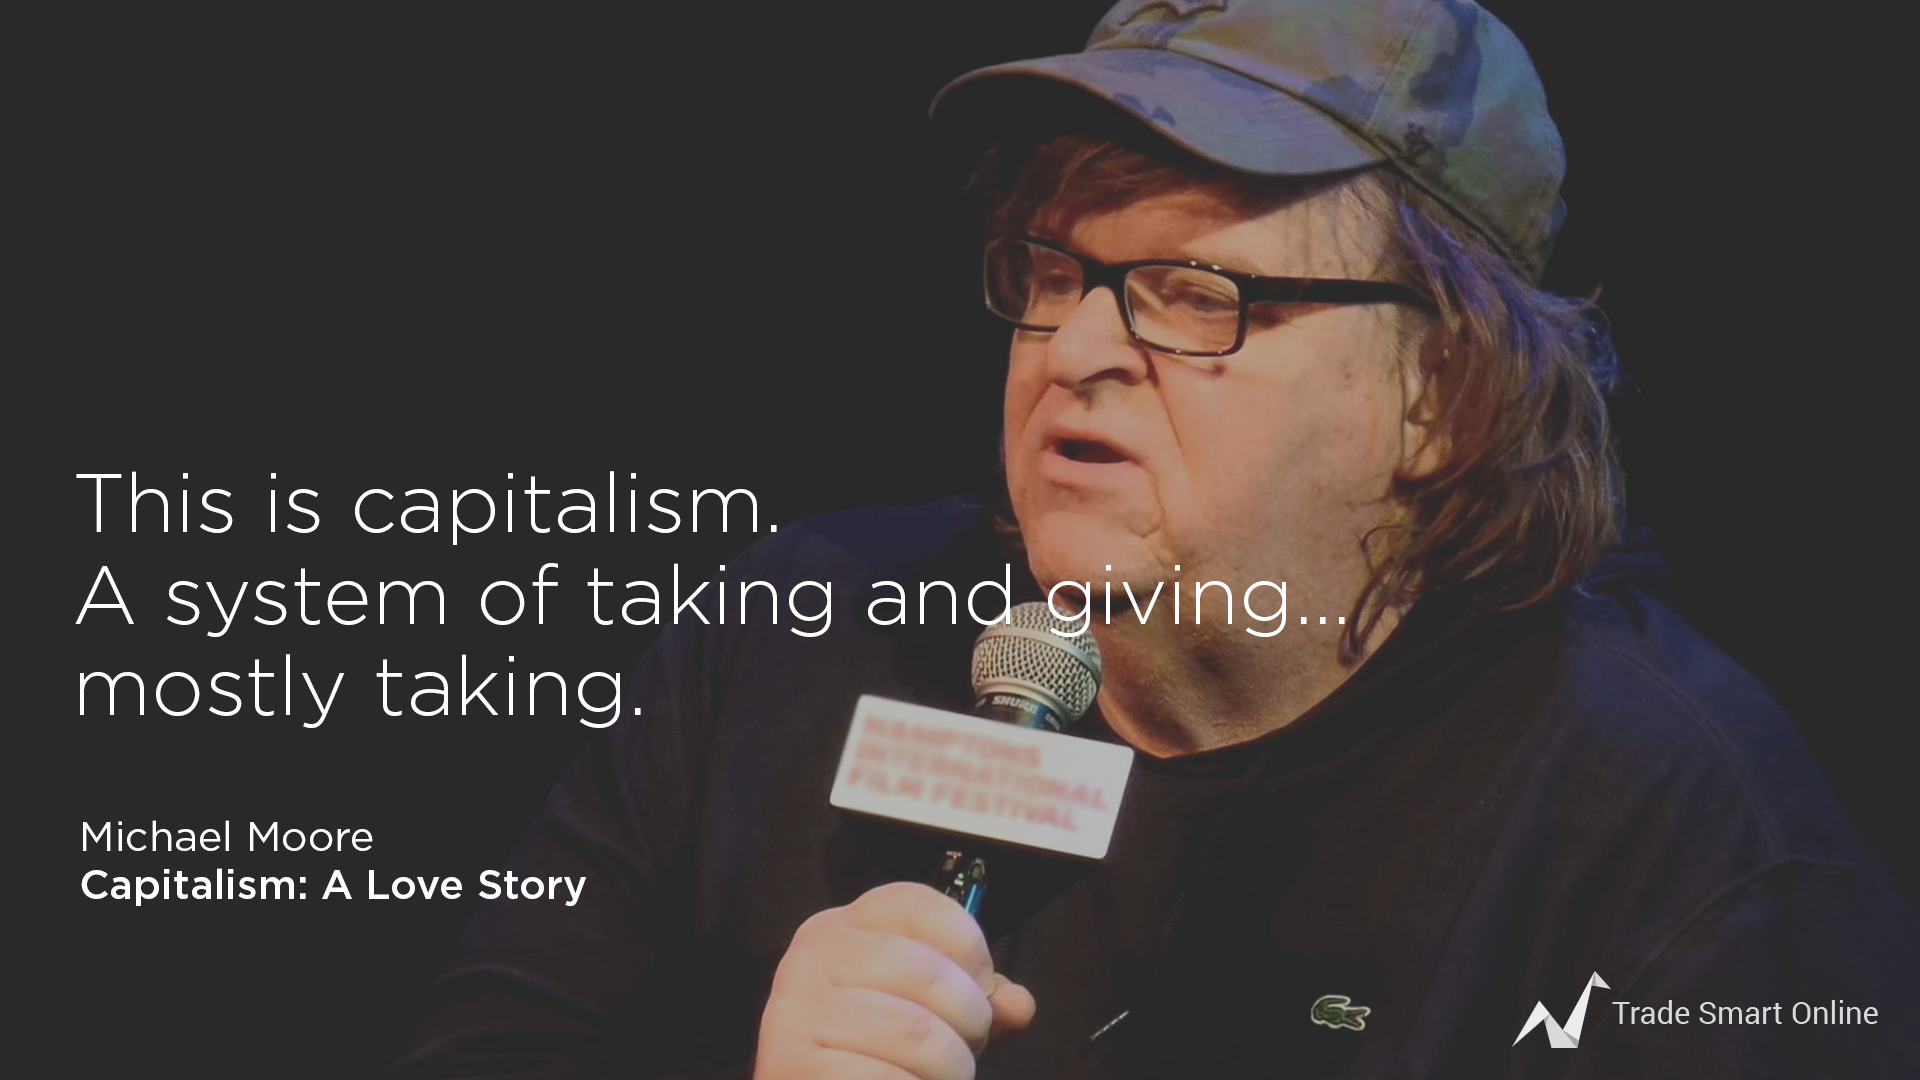 michael moore - 10 Best Movies on Trading And Stock Market